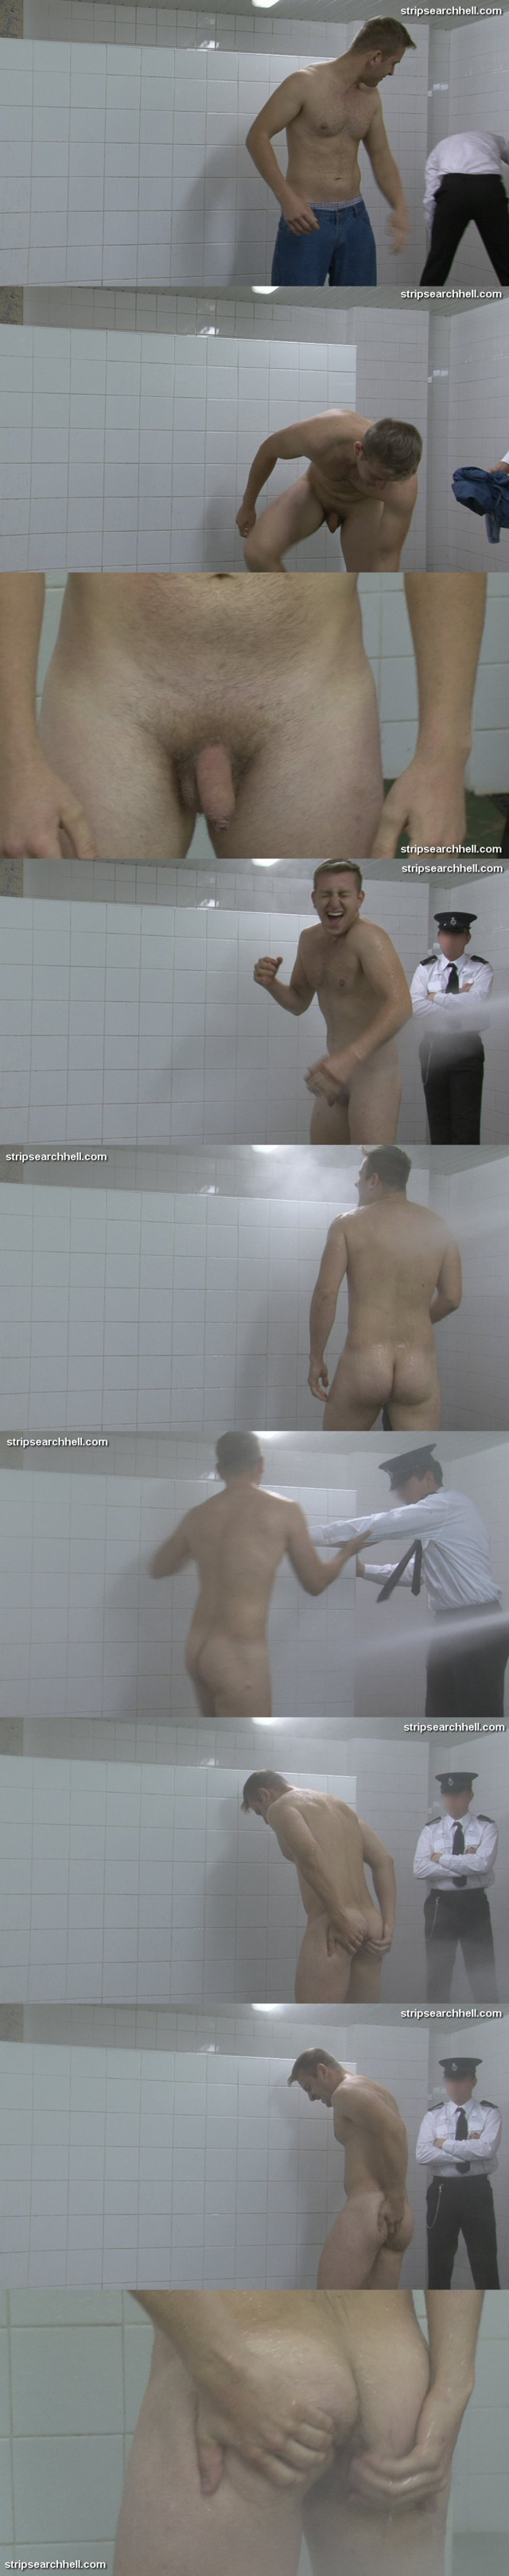 strip search hell forced shower